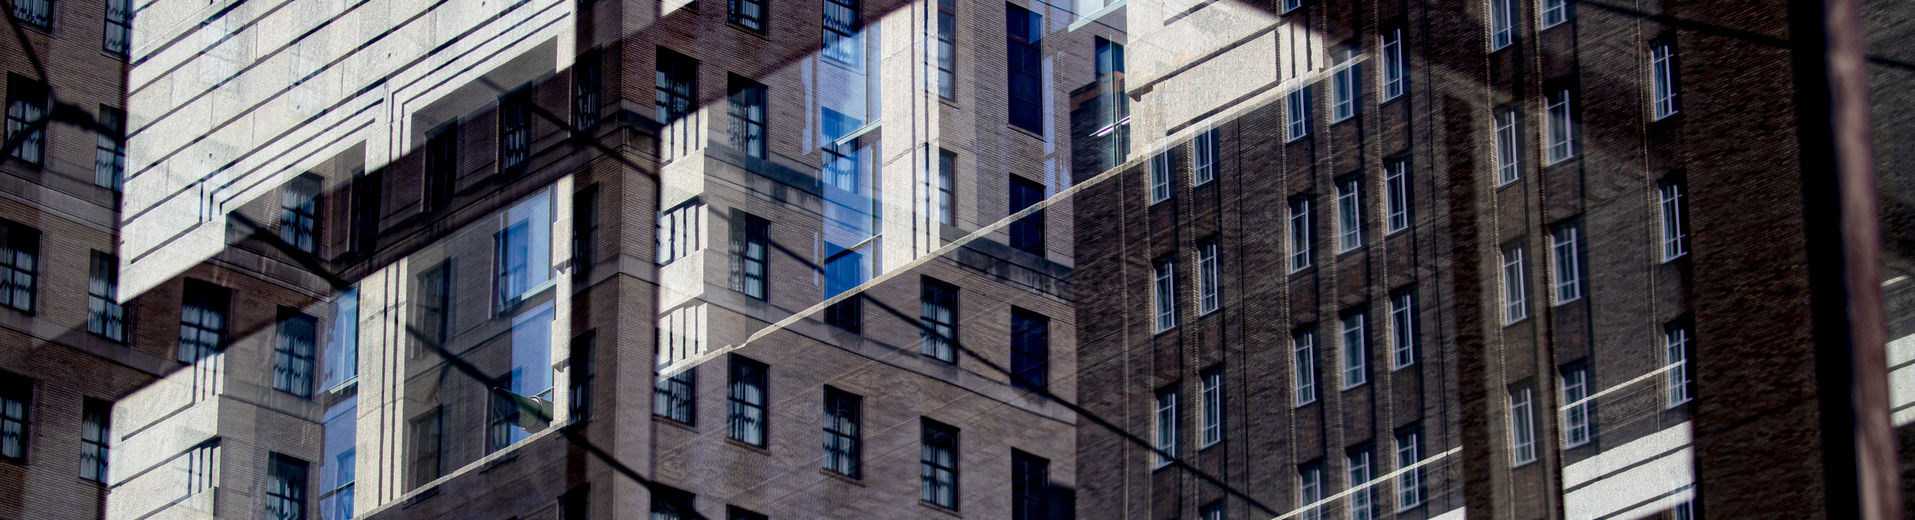 abstract image of buildings in Center City.